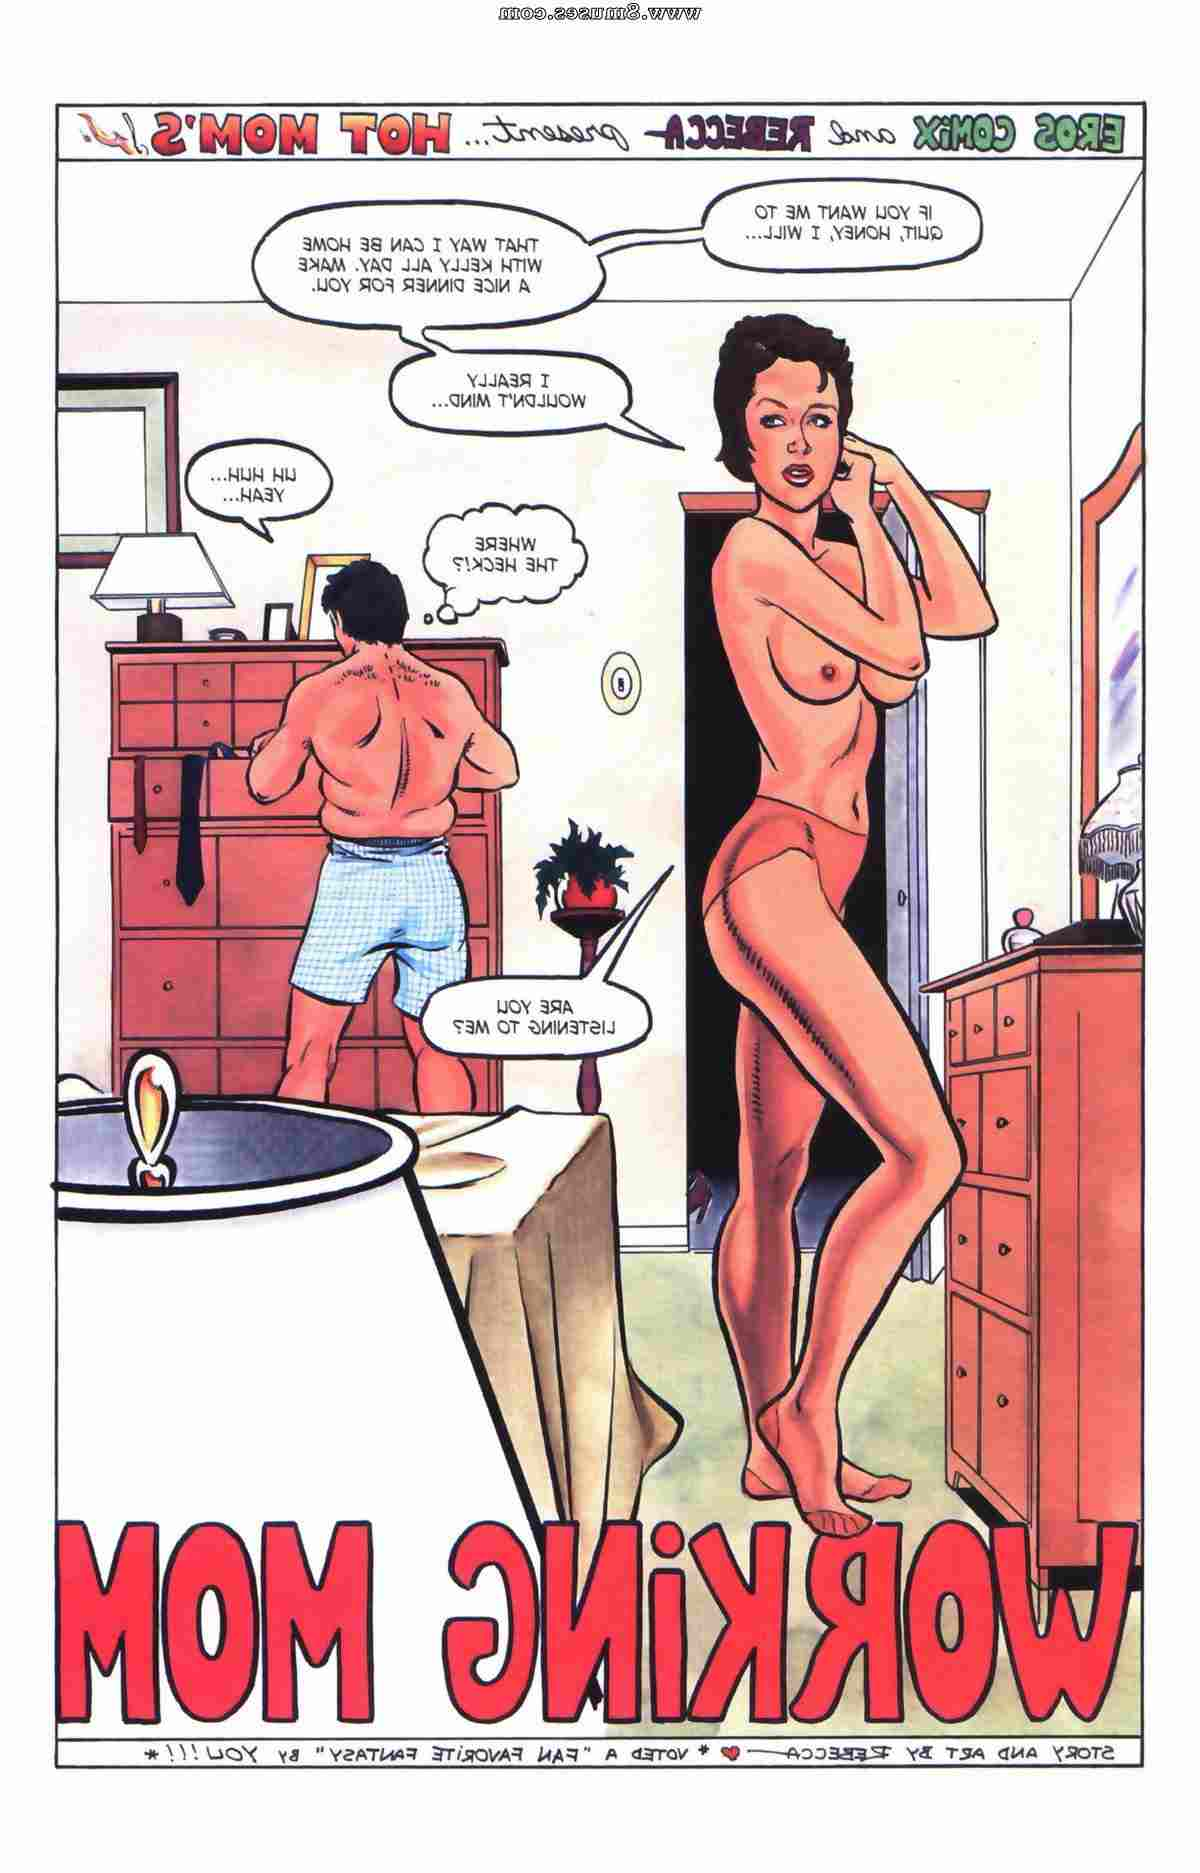 EROS-Comics/Hot-Moms/Hot-Moms-02-Working-Mom-Sisterly-Lust Hot_Moms_02_-_Working_Mom_-_Sisterly_Lust__8muses_-_Sex_and_Porn_Comics_3.jpg